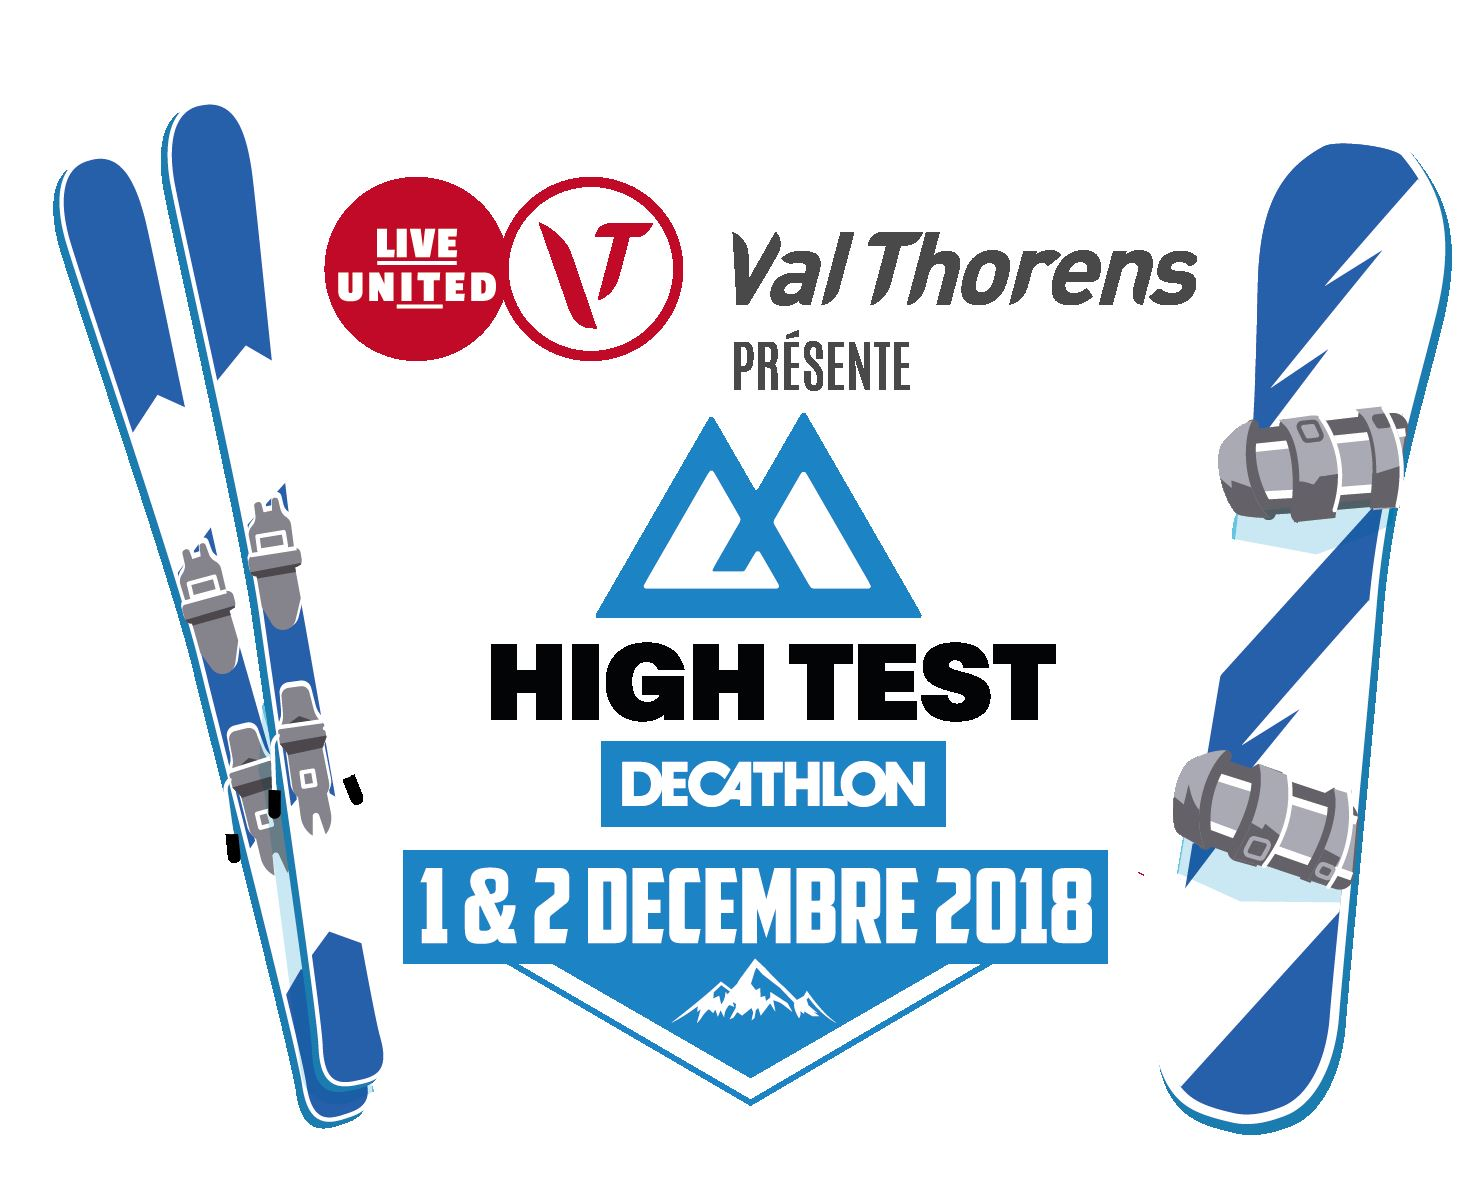 WEEK-END HIGH TEST BY DECATHLON - DU 30/11/18 AU 02/12/18 -  EN HOTEL - A PARTIR DE  234 € / PERS*